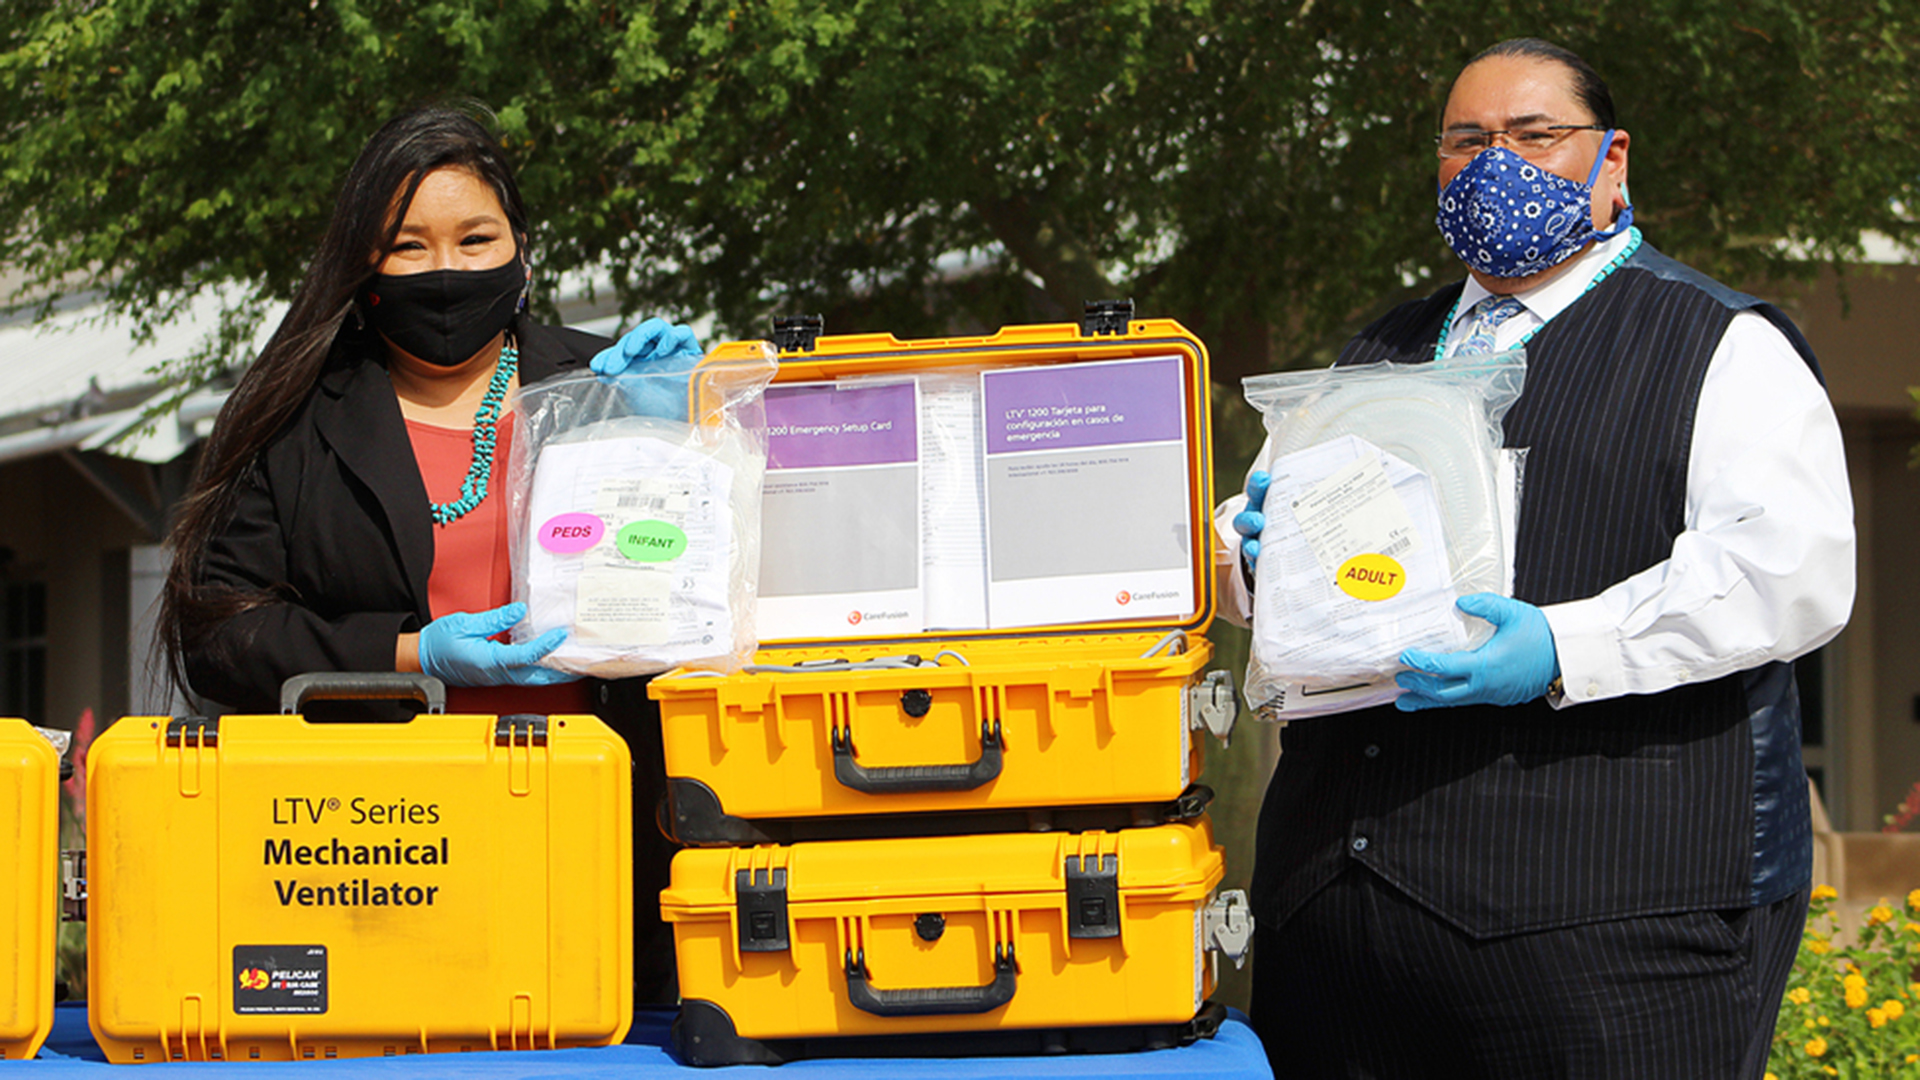 The Cocopah and Quechan Indian tribes donated ventilators they received from the Strategic National Stockpile to Yuma Regional Medical Center during the COVID-19 pandemic May 14, 2020.